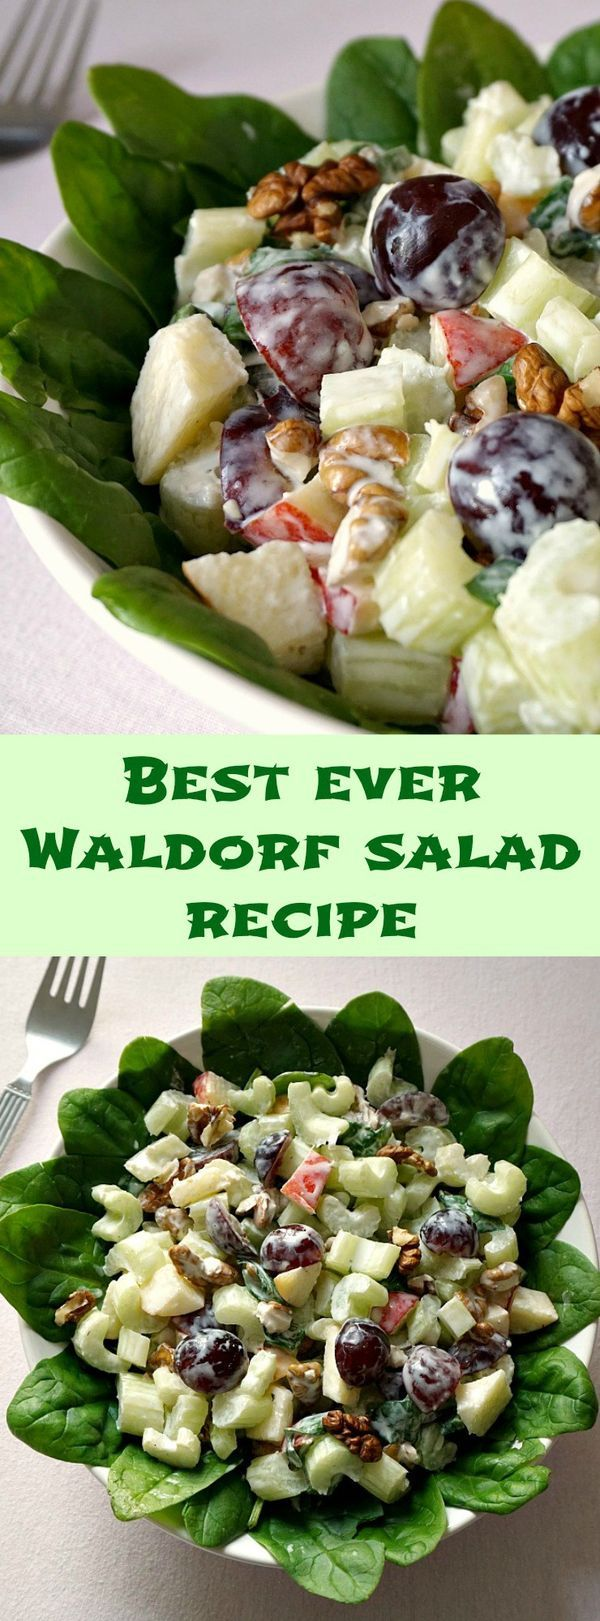 Make the best ever Waldorf salad with this recipe that includes a light yogurt and mayo dressing!